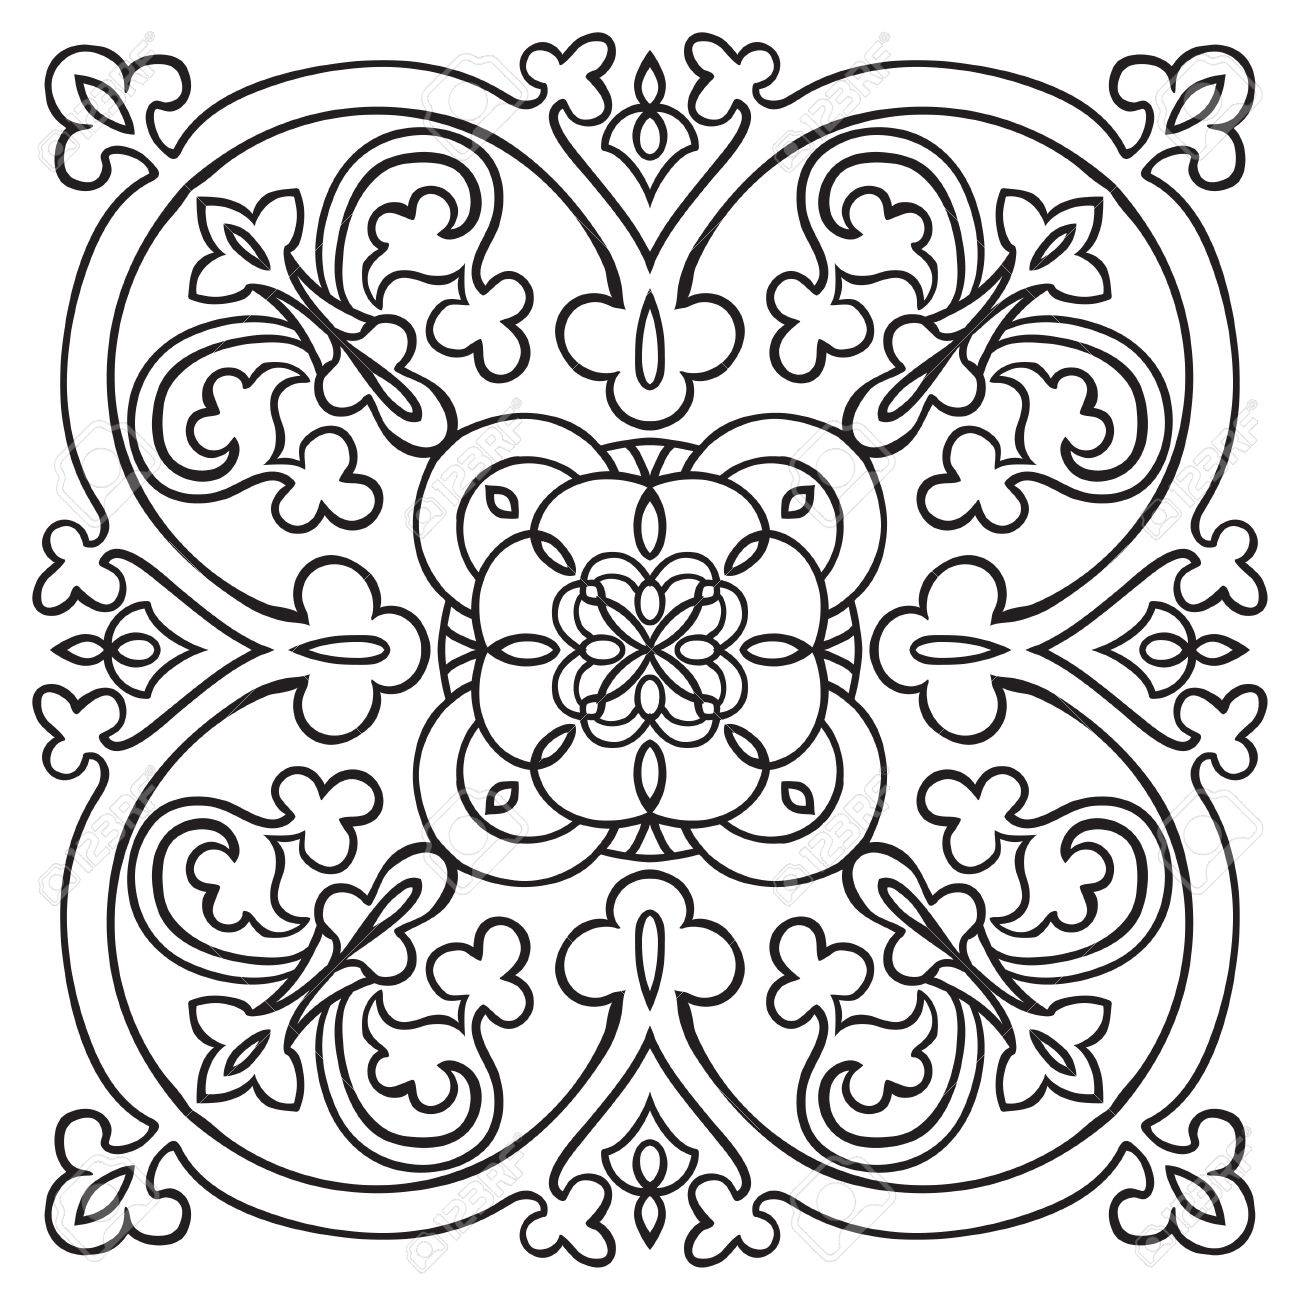 1300x1300 Hand Drawing Pattern For Tile In Black And White Colors. Italian